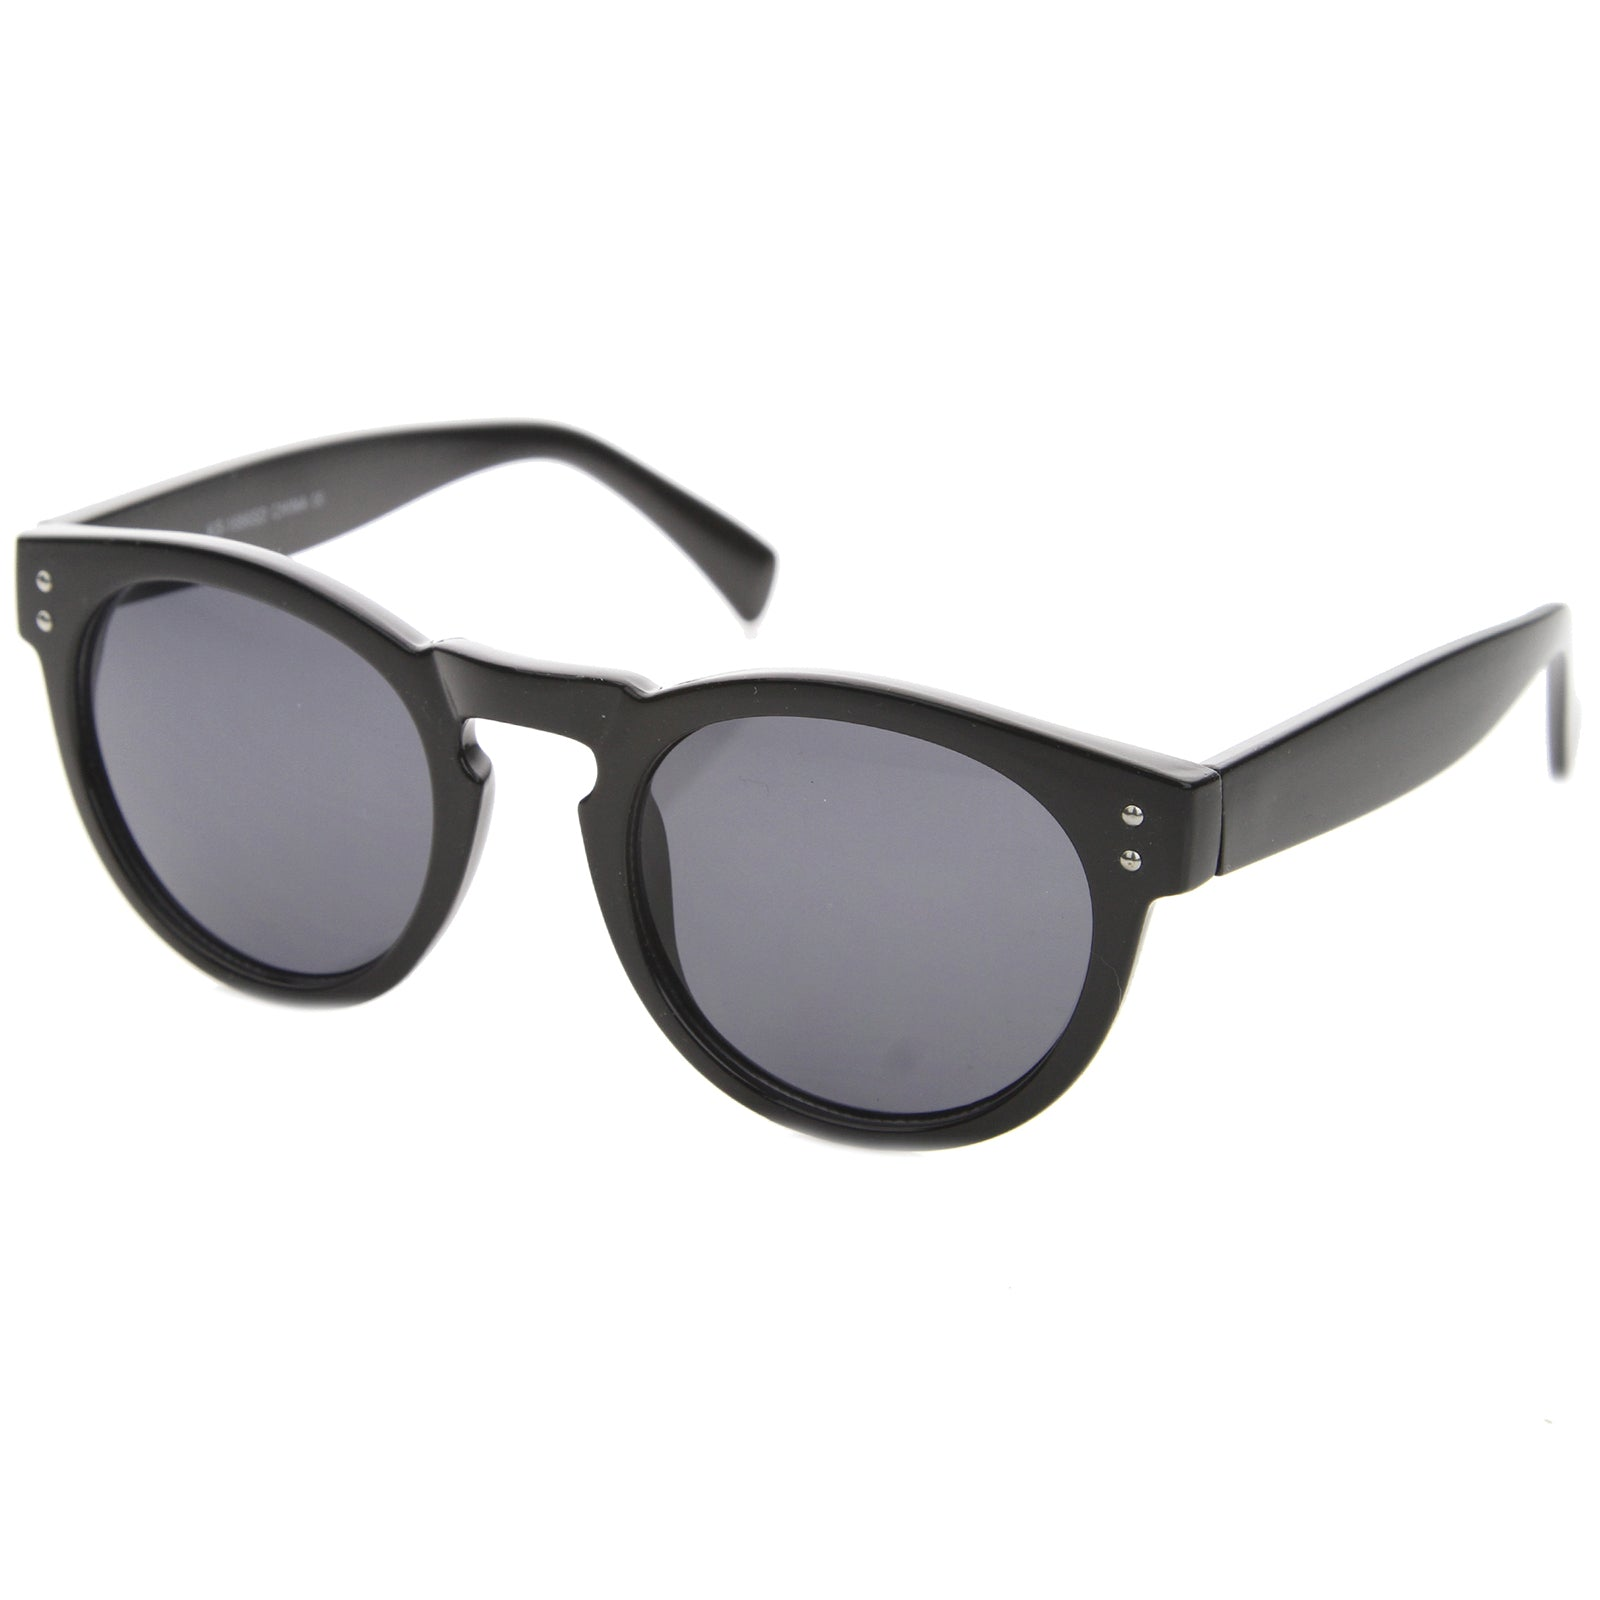 Horn Rimmed Sunglasses With UV400 Protected Composite Lens - sunglass.la